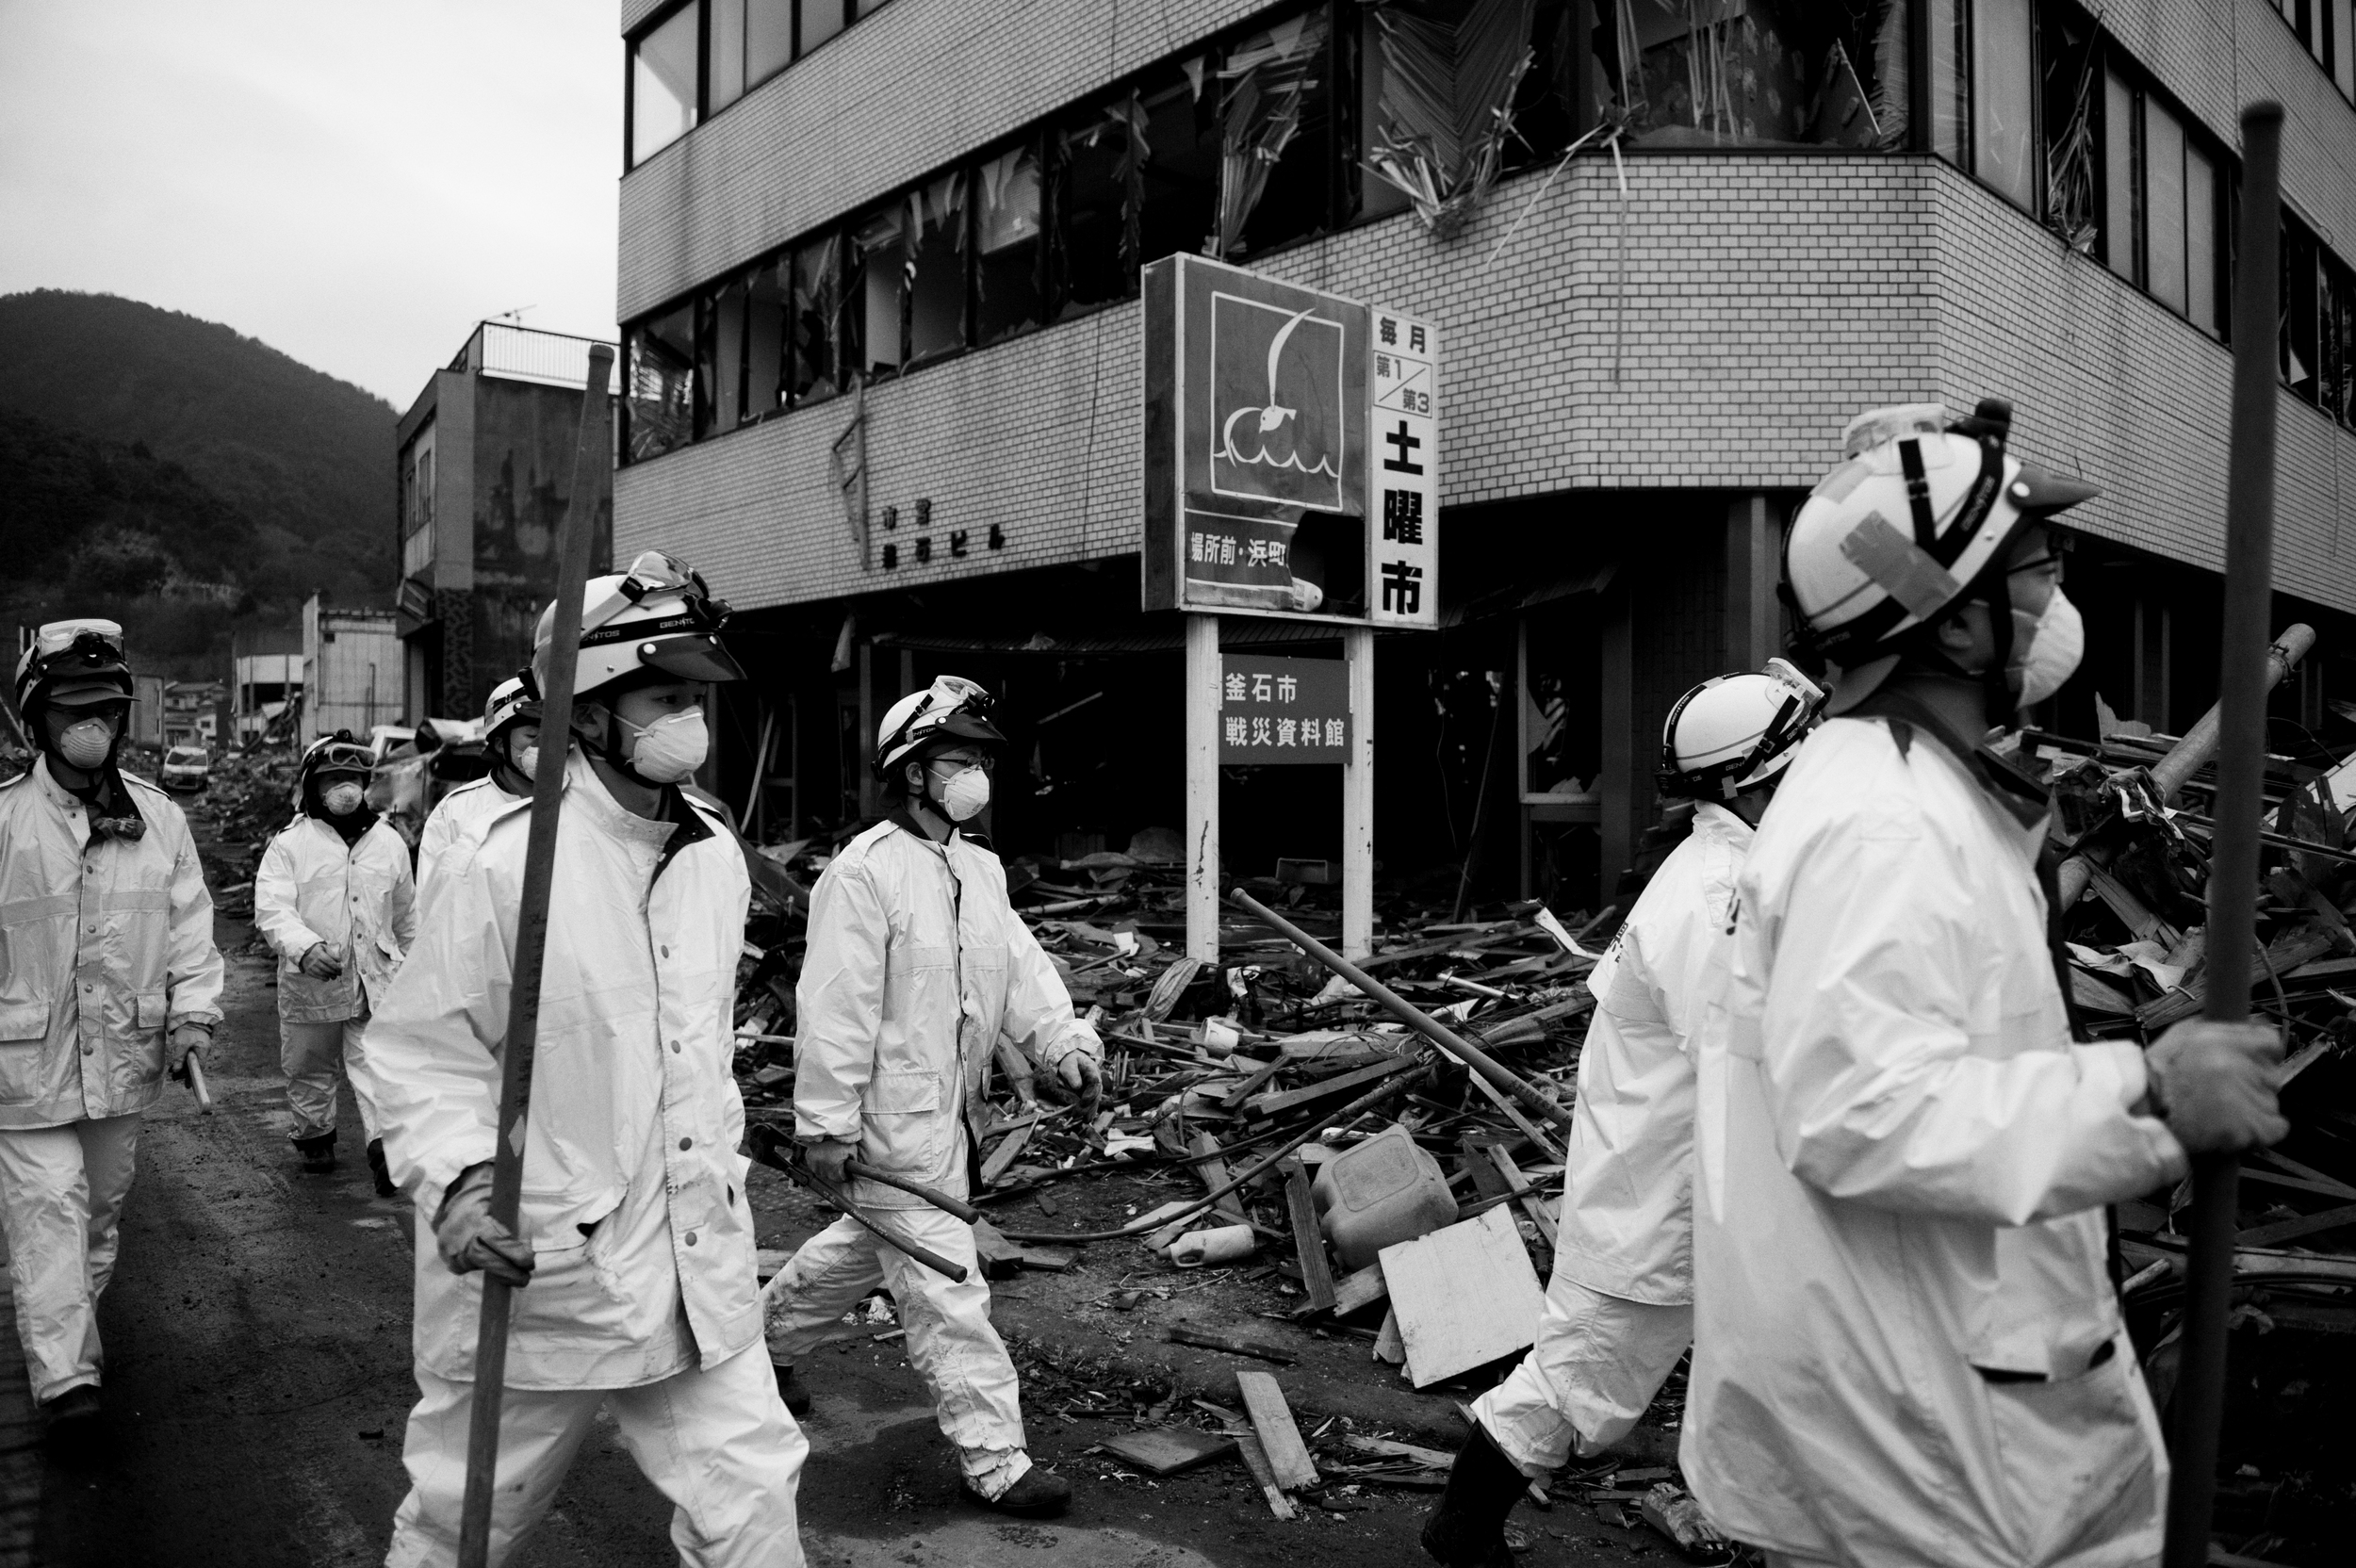 Japanese police search for survivors after the 2011 Tōhoku earthquake and tsunami in   Kamaishi  , Iwate, Japan, March 23, 2011. (Photo / Mark Pearson) Japanese National Police Agency confirmed 15,884 deaths,     6,147 injured,     and 2,636 people missing  .